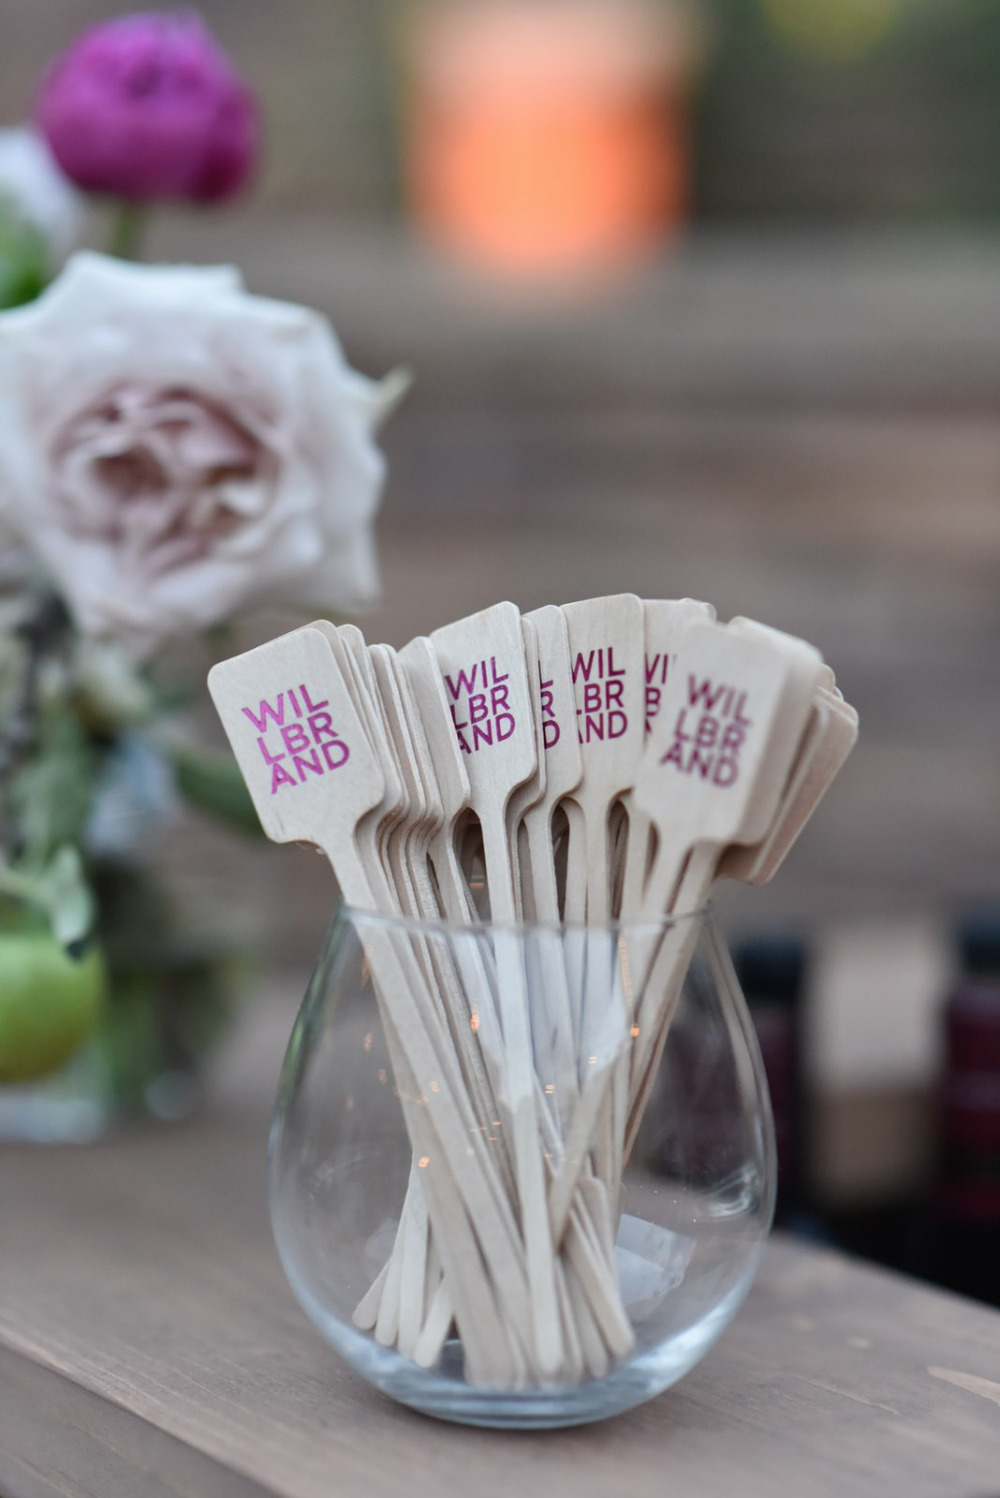 Monogram stir sticks